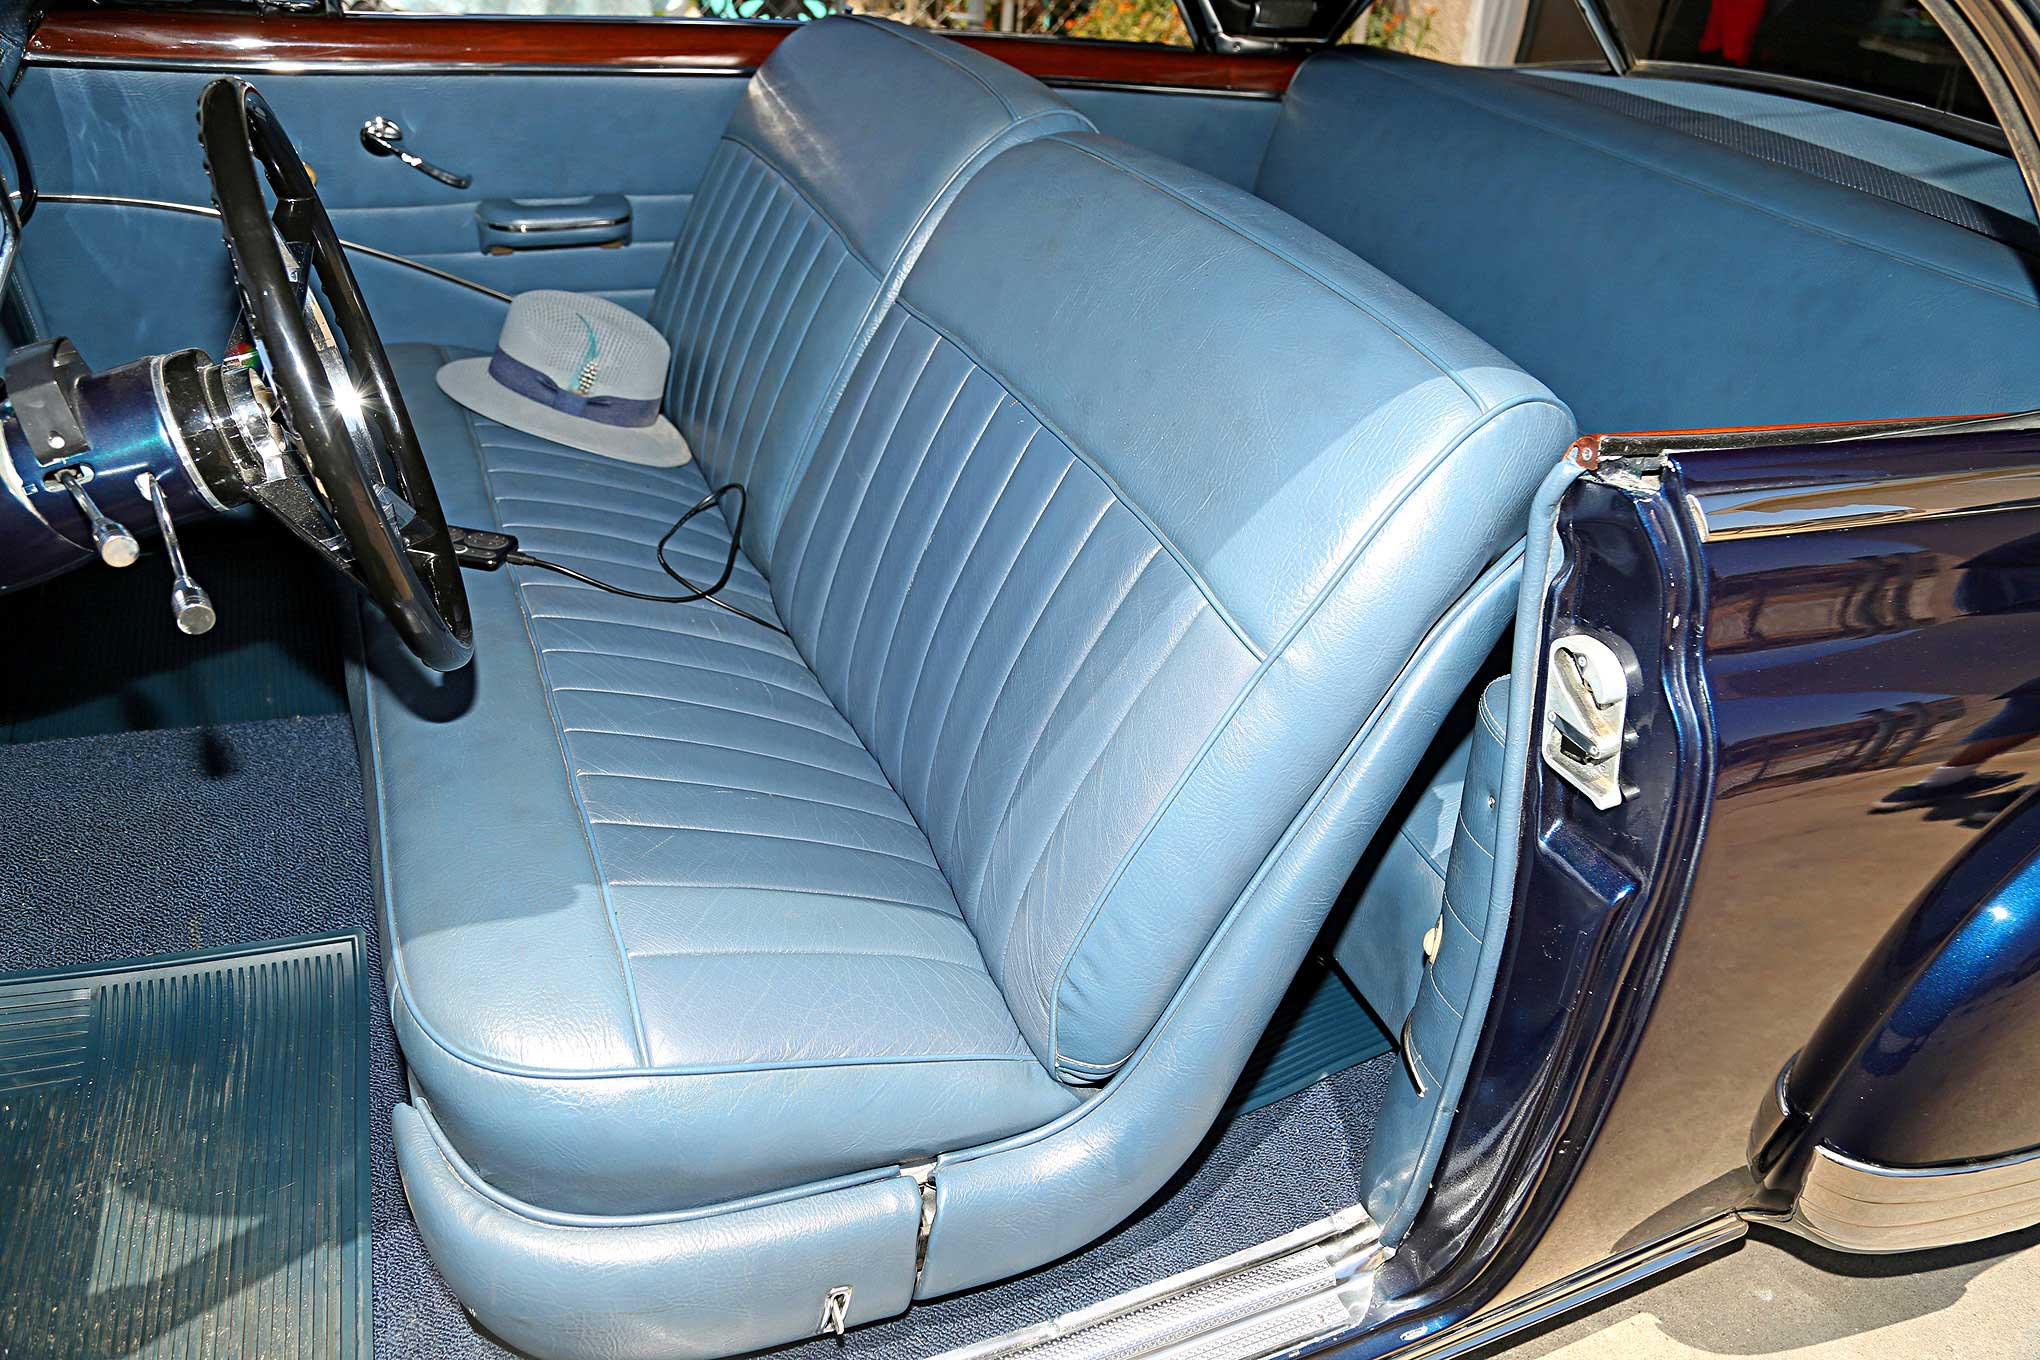 1951 Chevrolet Deluxe Front Seats Lowrider 2 Door About This Editor